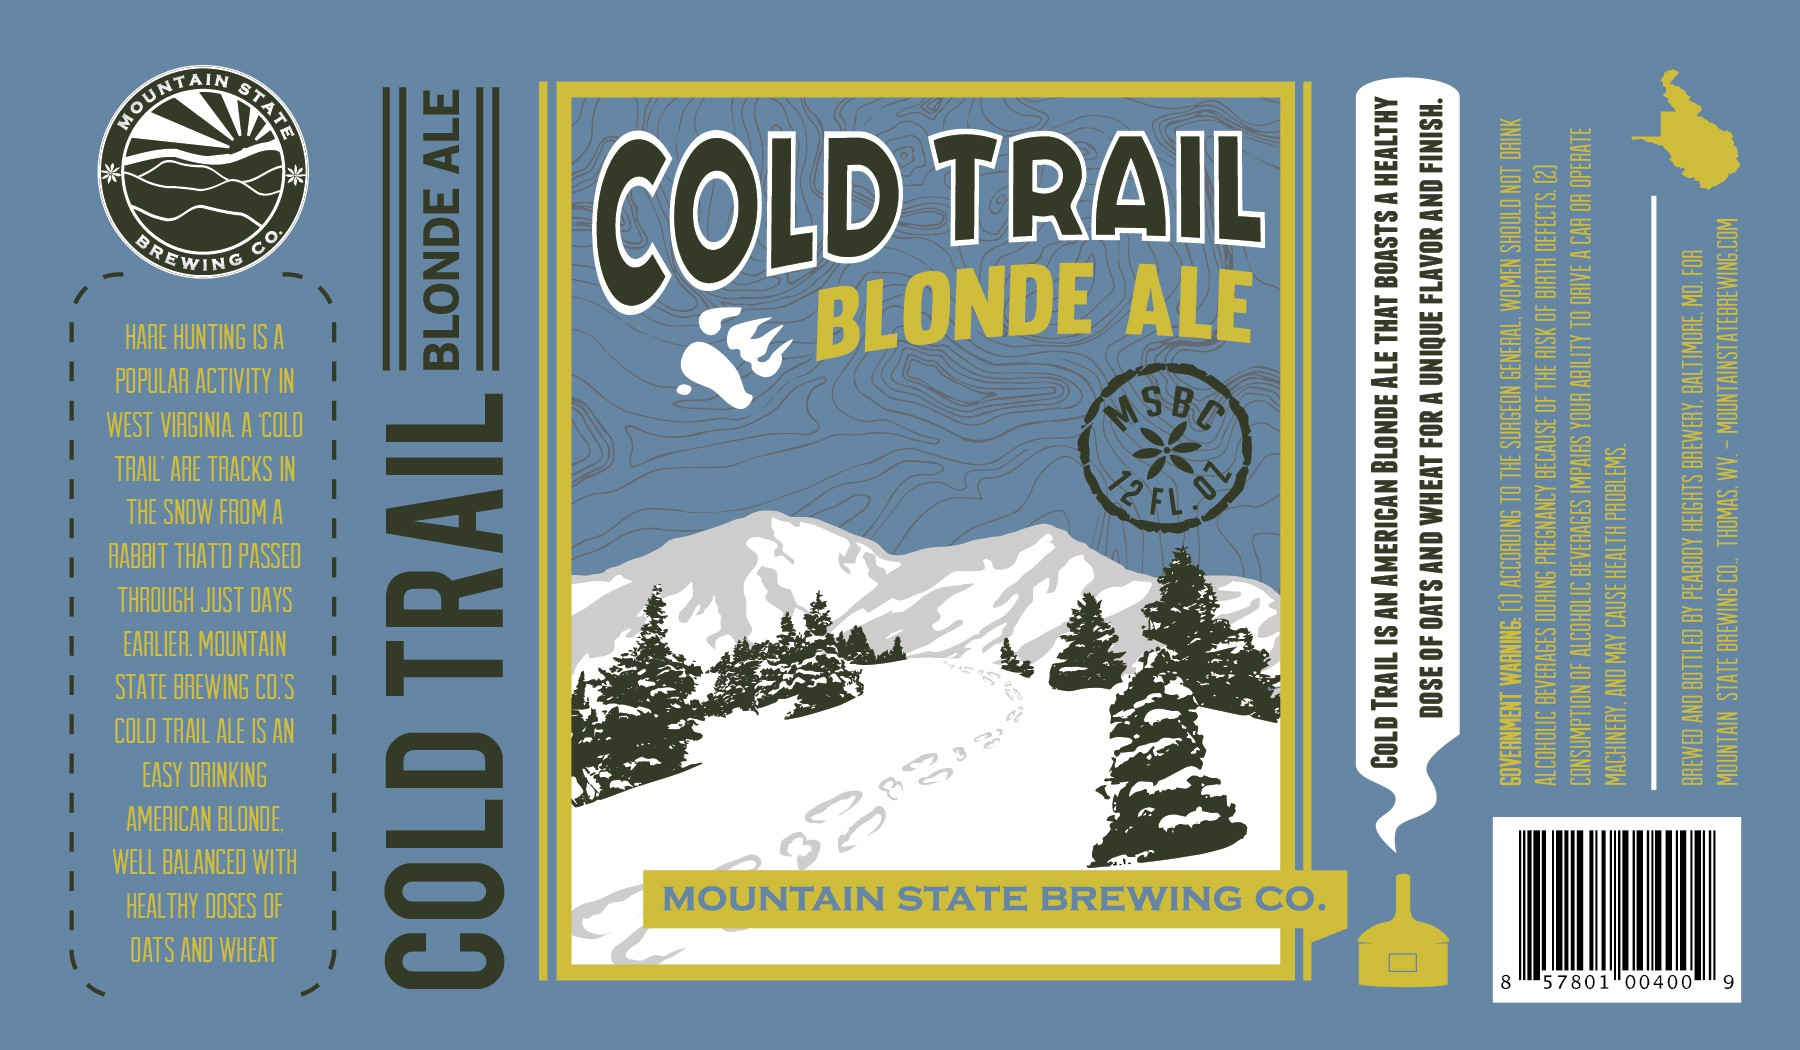 New CRAFT BEER LABEL wanted for MOUNTAIN STATE BREWING CO.